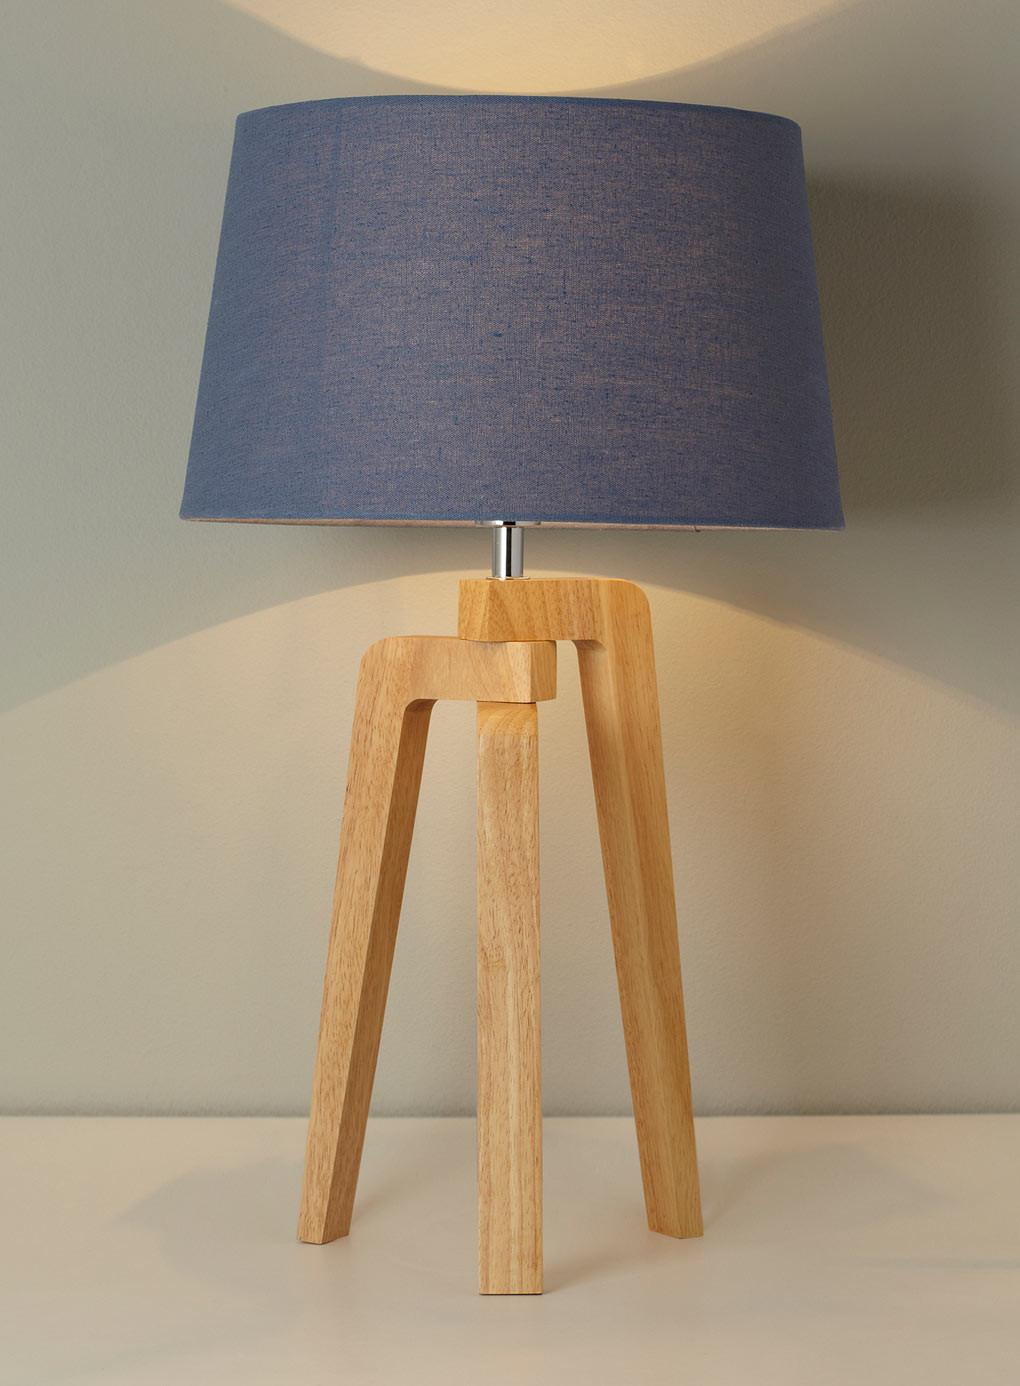 Cool Contemporary Wooden Table Lamp Design Presenting